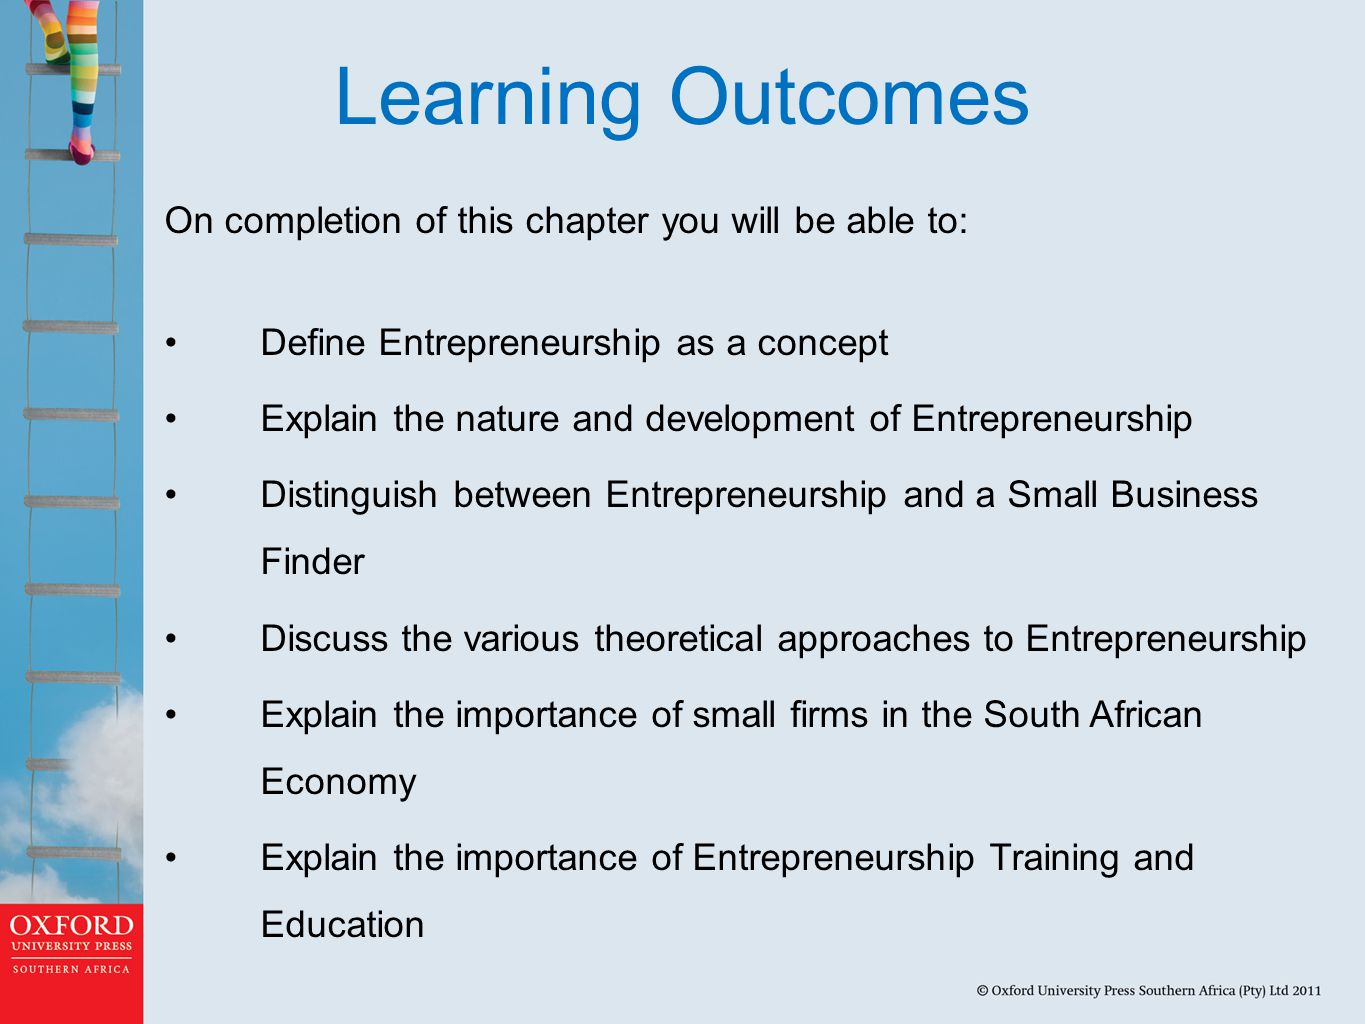 Learning Outcomes On completion of this chapter you will be able to: Define Entrepreneurship as a concept Explain the nature and development of Entrepreneurship Distinguish between Entrepreneurship and a Small Business Finder Discuss the various theoretical approaches to Entrepreneurship Explain the importance of small firms in the South African Economy Explain the importance of Entrepreneurship Training and Education